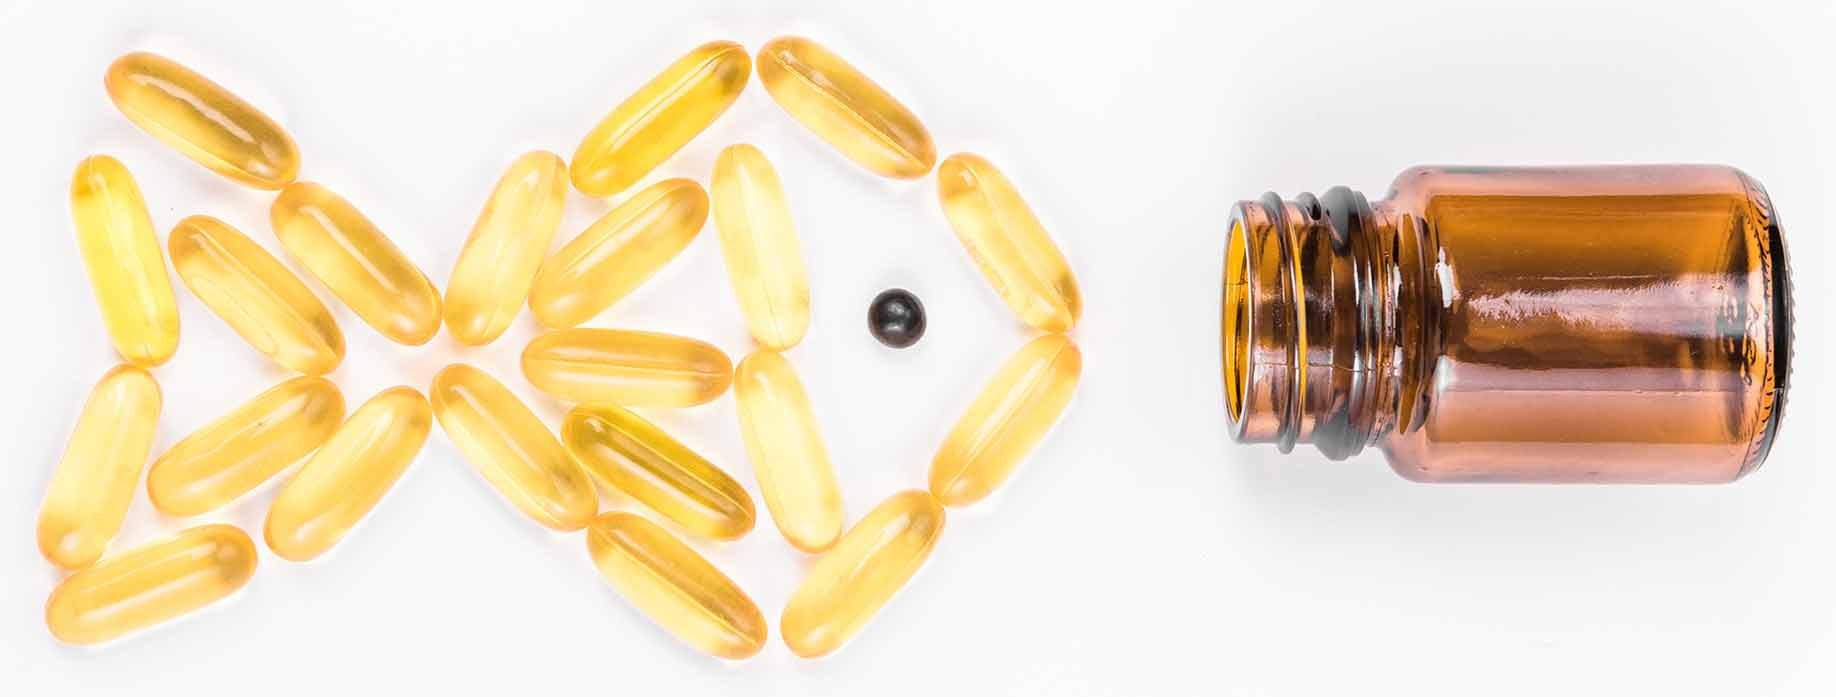 fish oil omega 3 supplements capsules